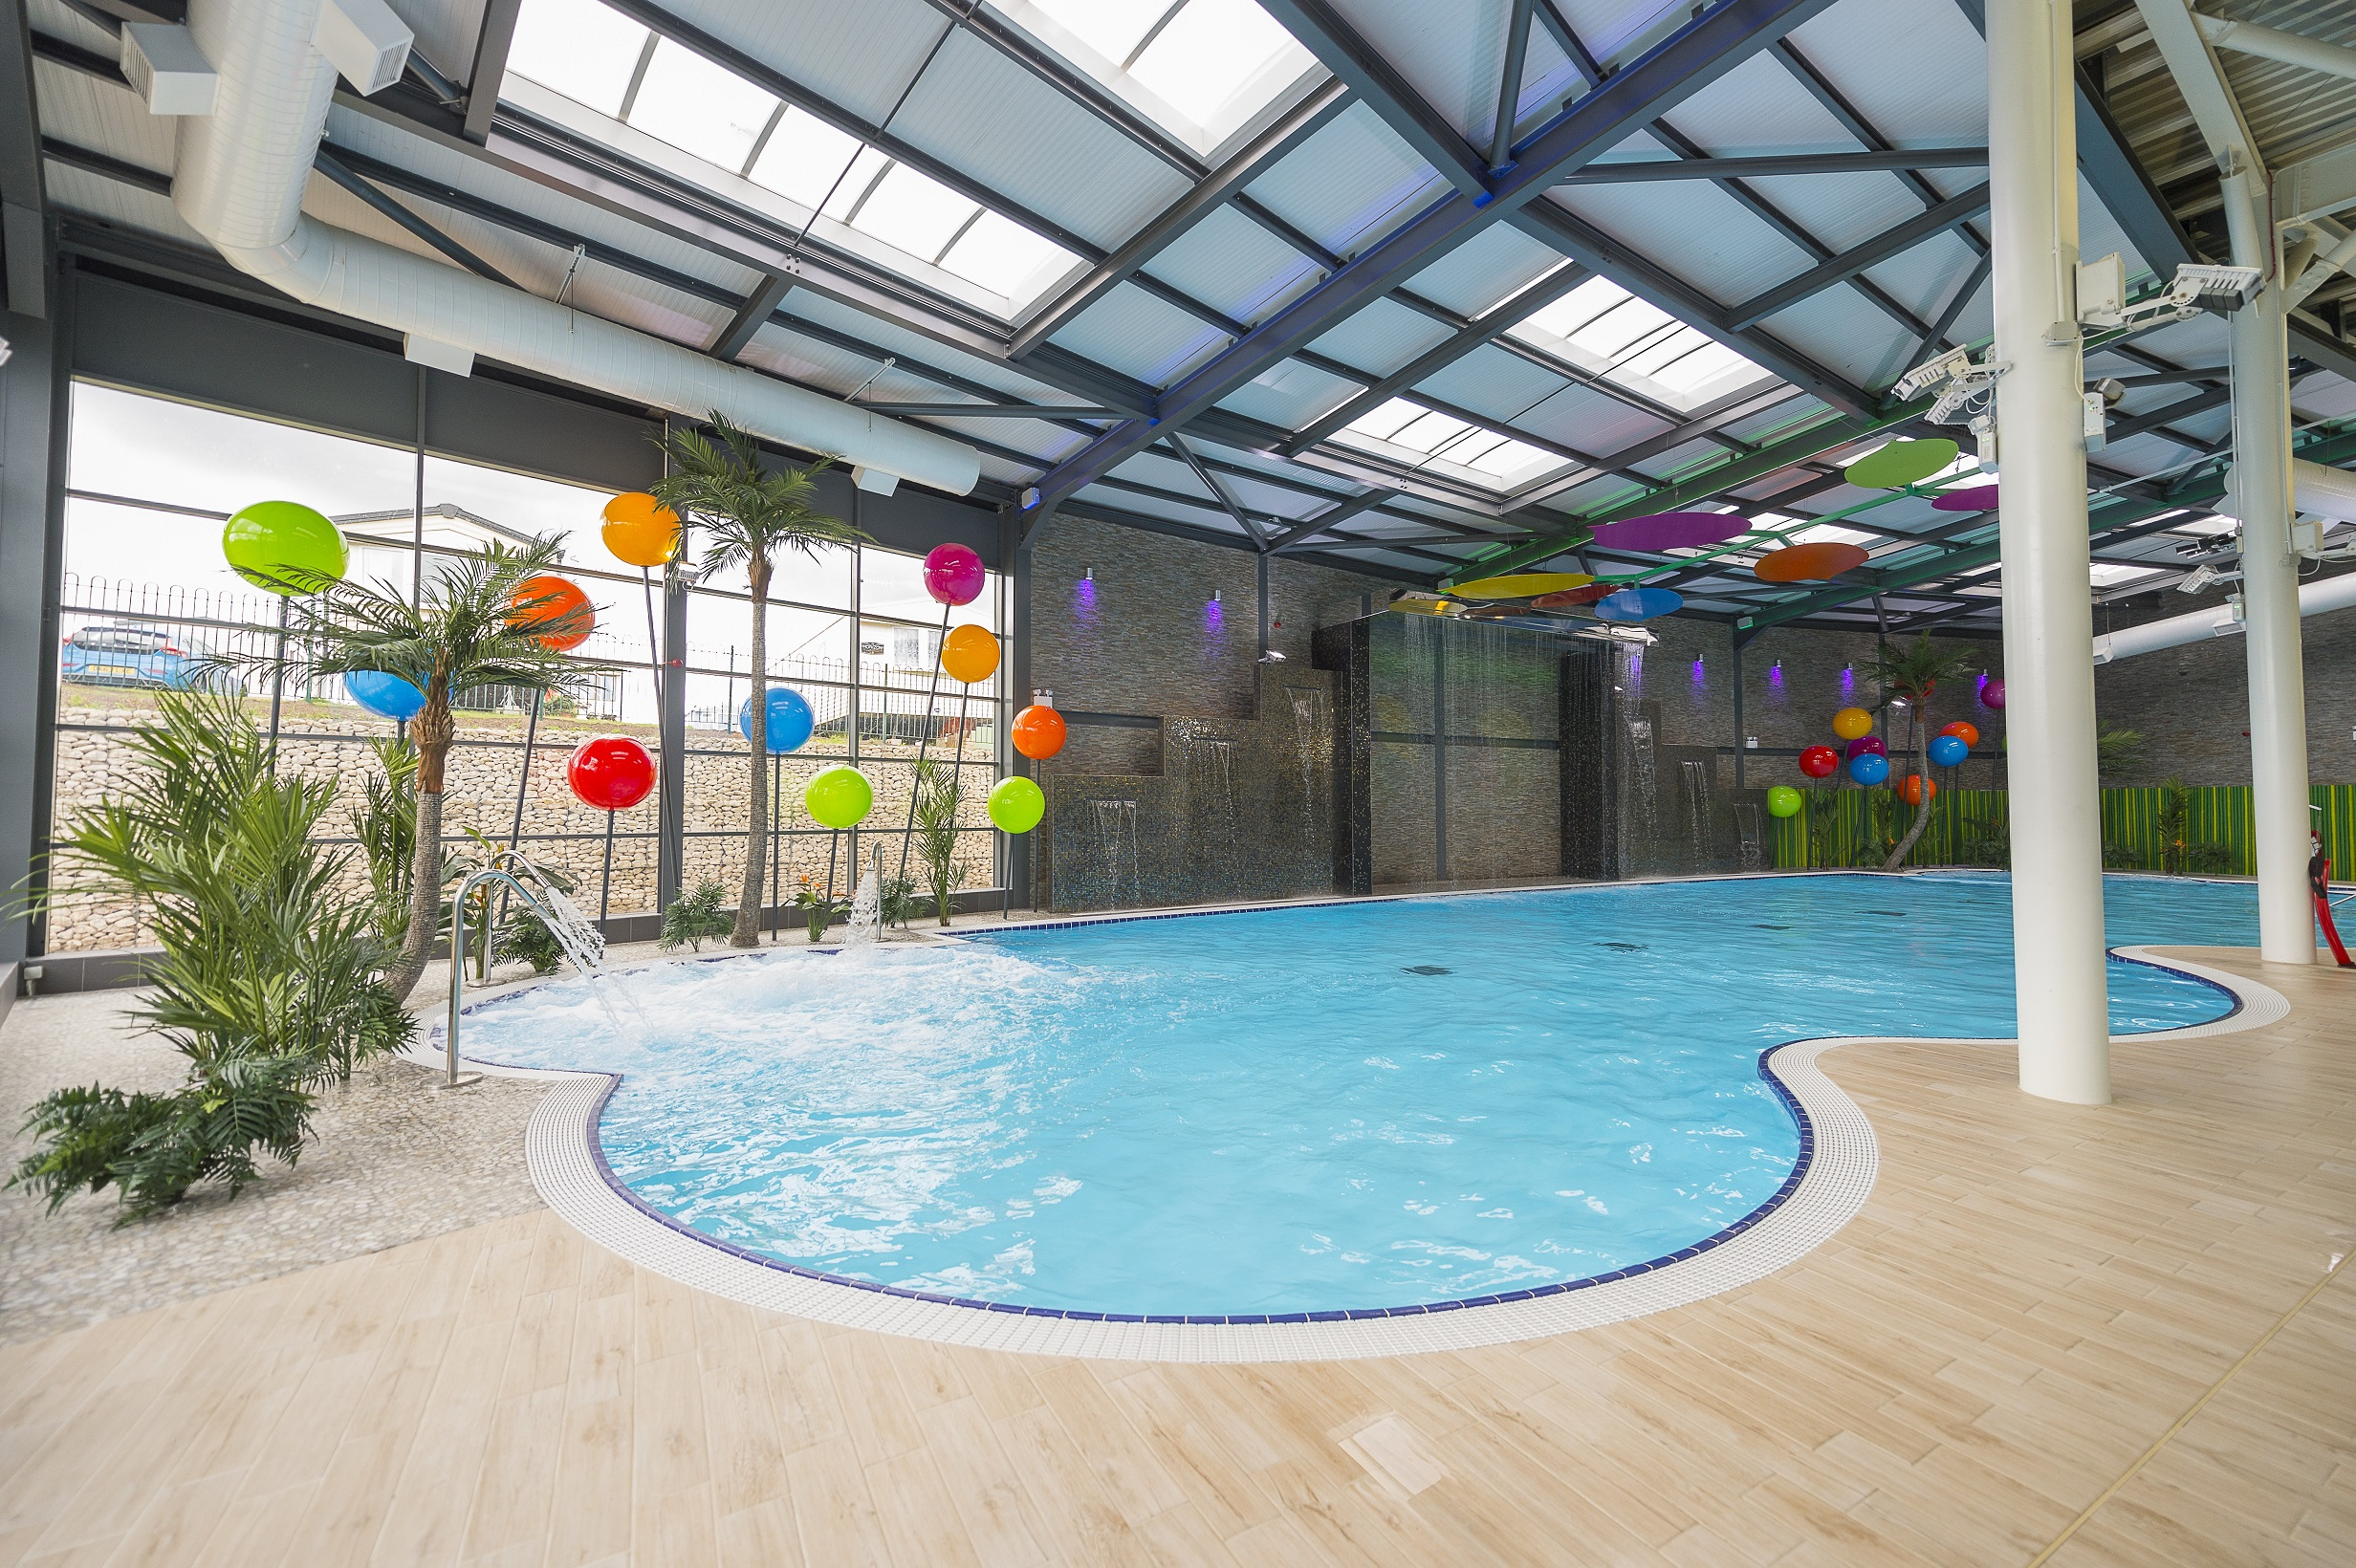 Cresta leisure swimming pools hot tubs for Pool design meindl